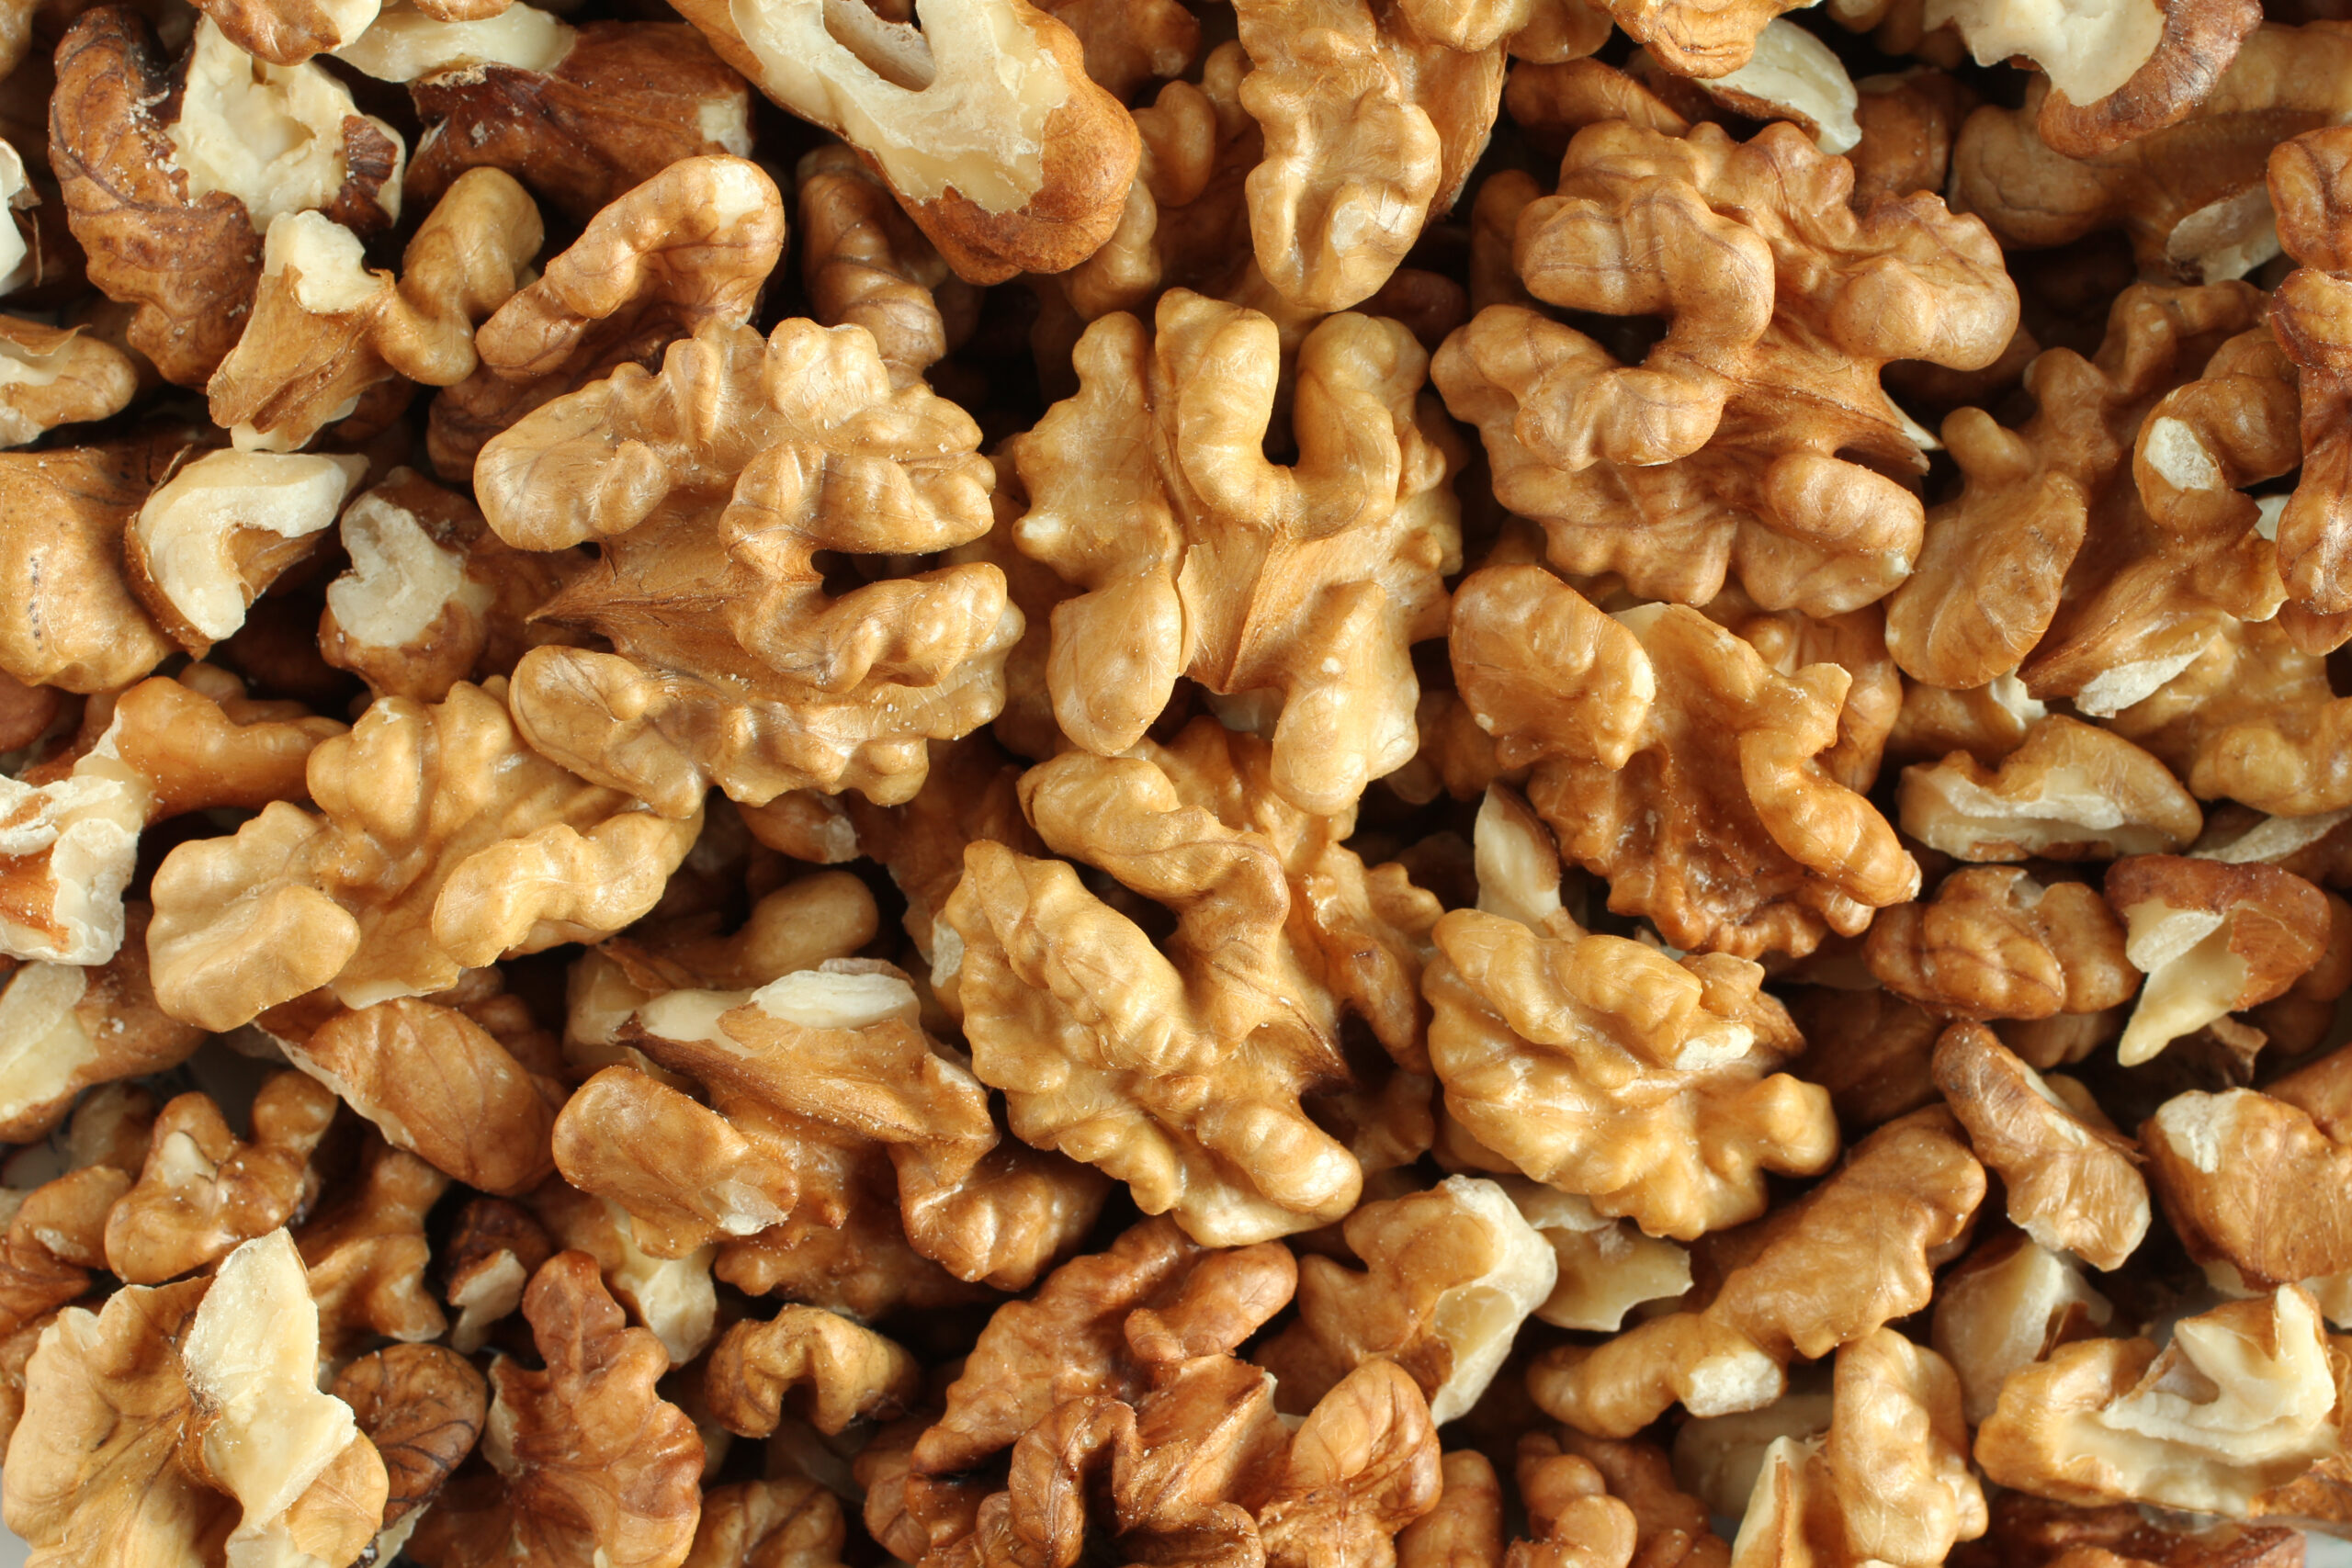 Walnuts are now being used as a protein base.